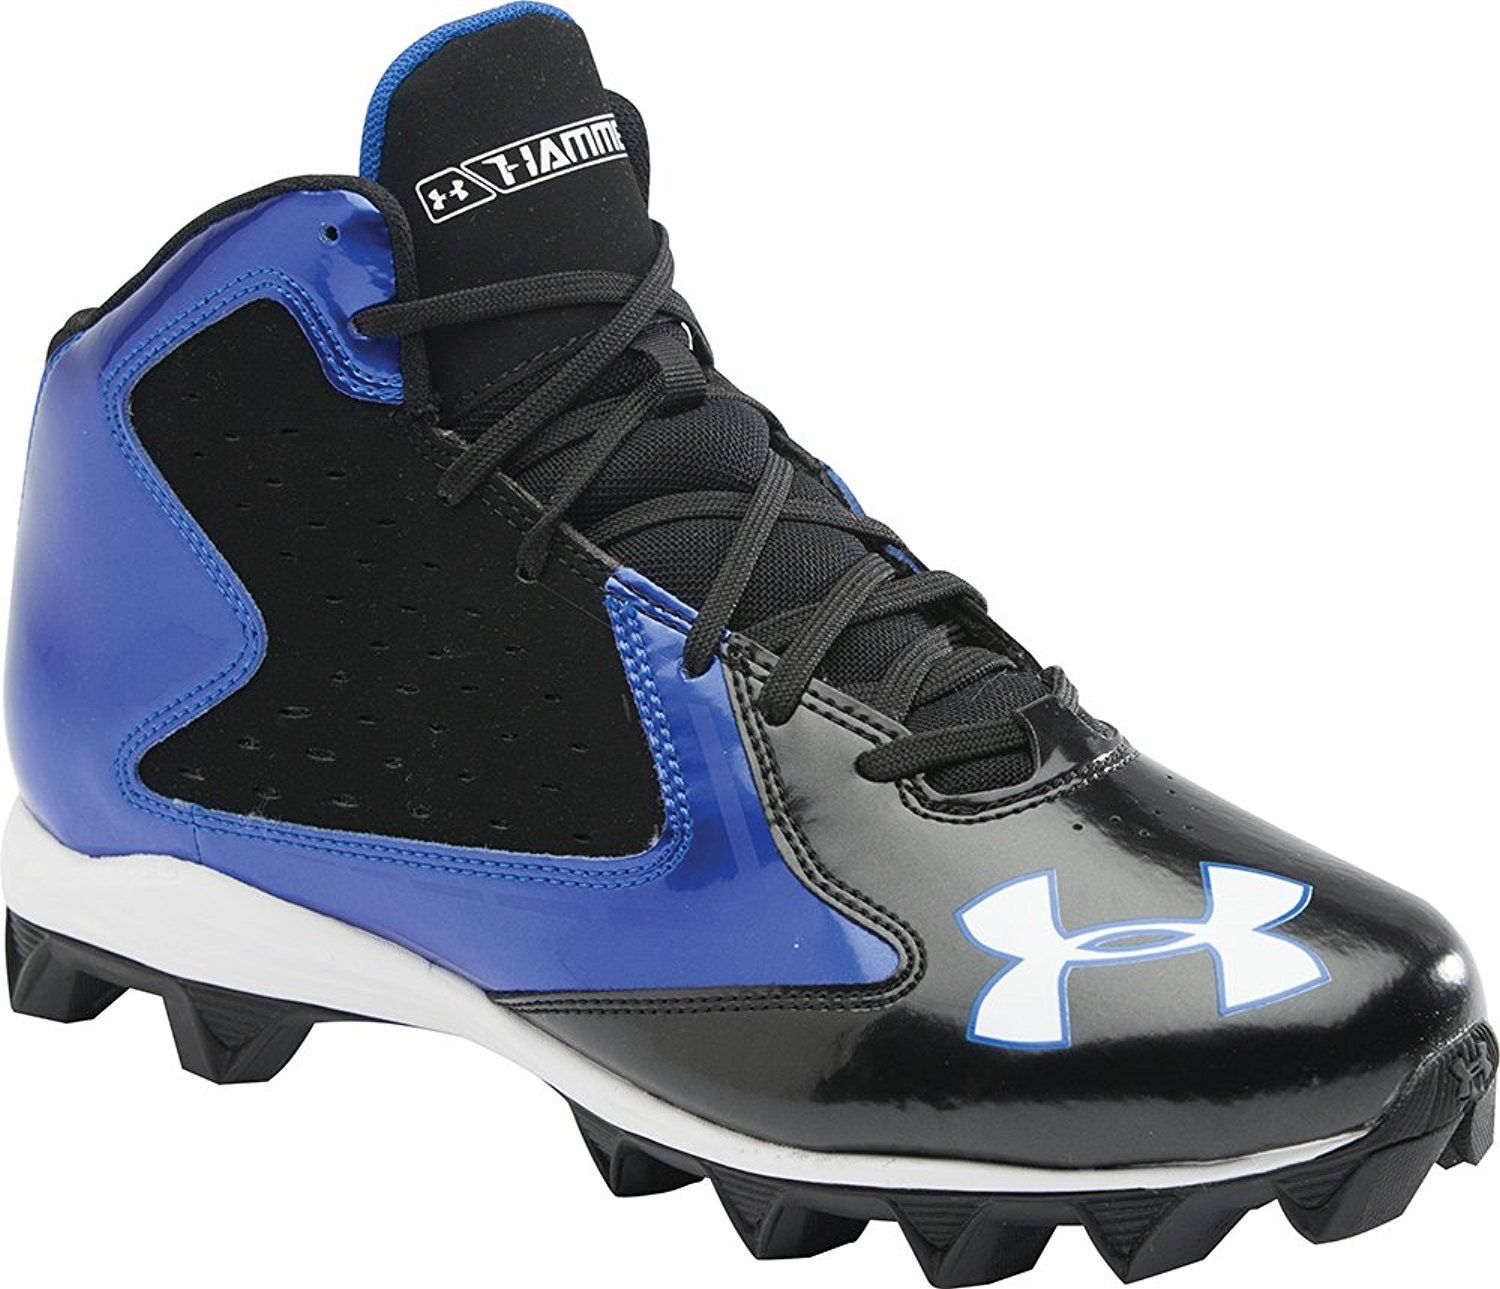 0a985c33104c Buy Under Armour Mens UA Hammer Mid D Football Cleats in Cheap Price ...